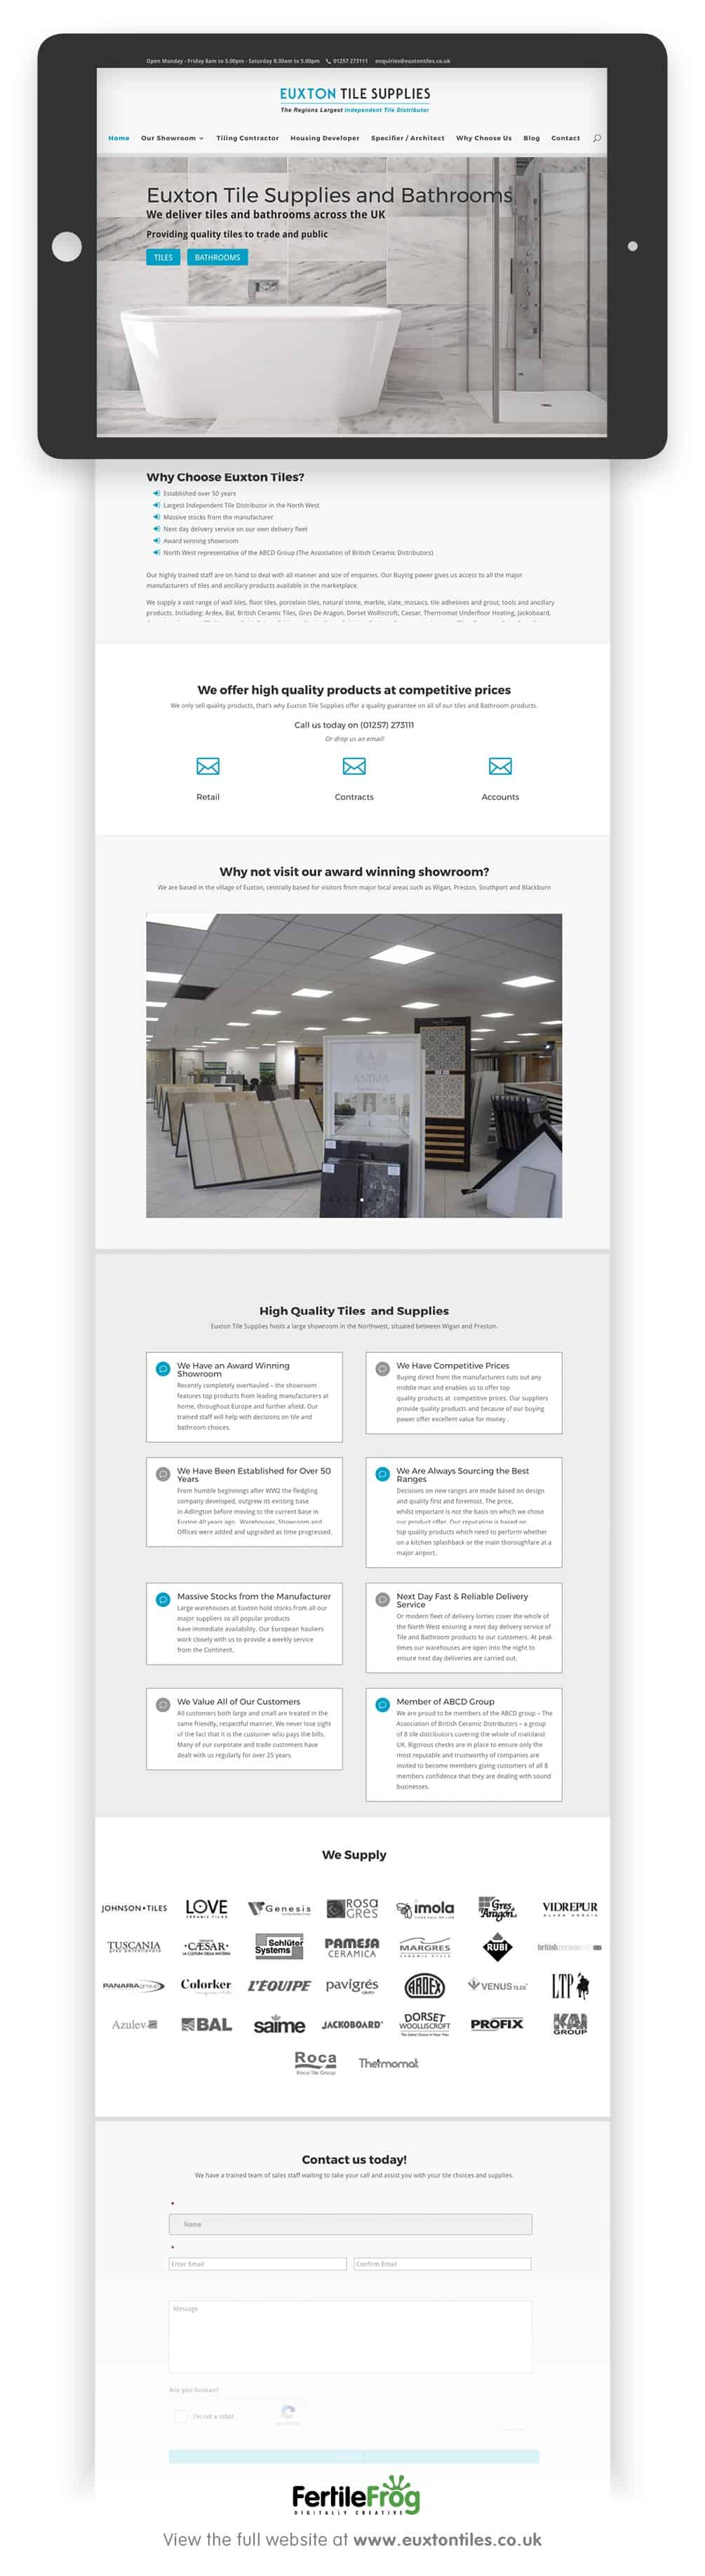 Euxton Tile Supplies Web Build visuals